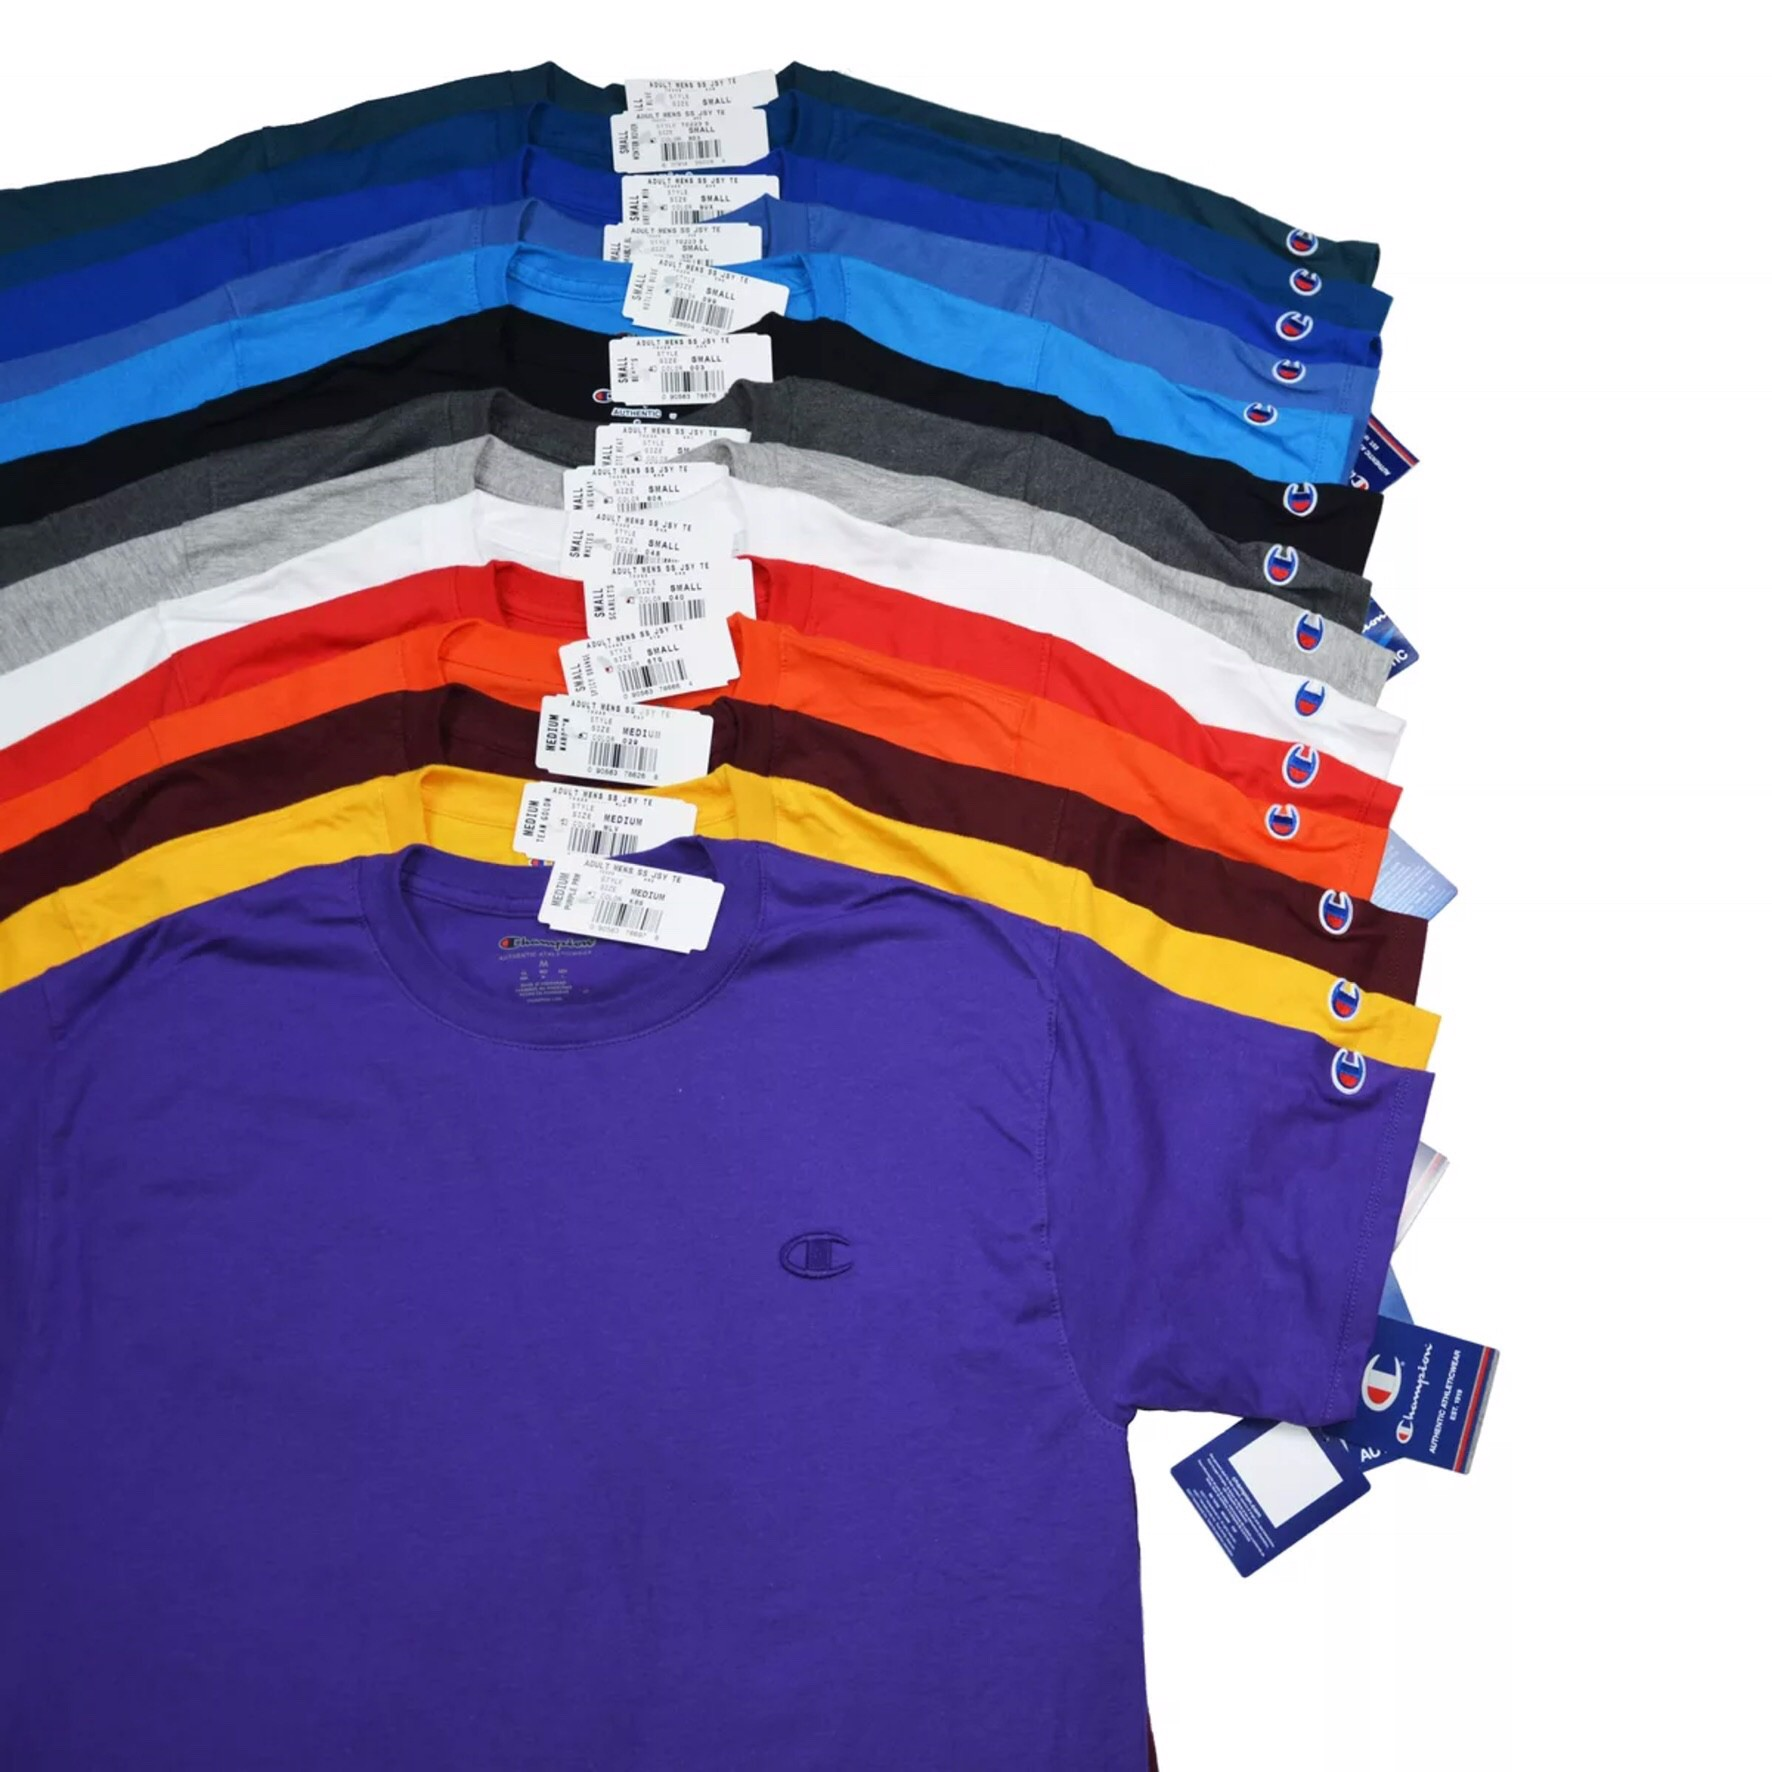 P100005 CHAMPION AUTHENTIC MENS JERSEY TEE